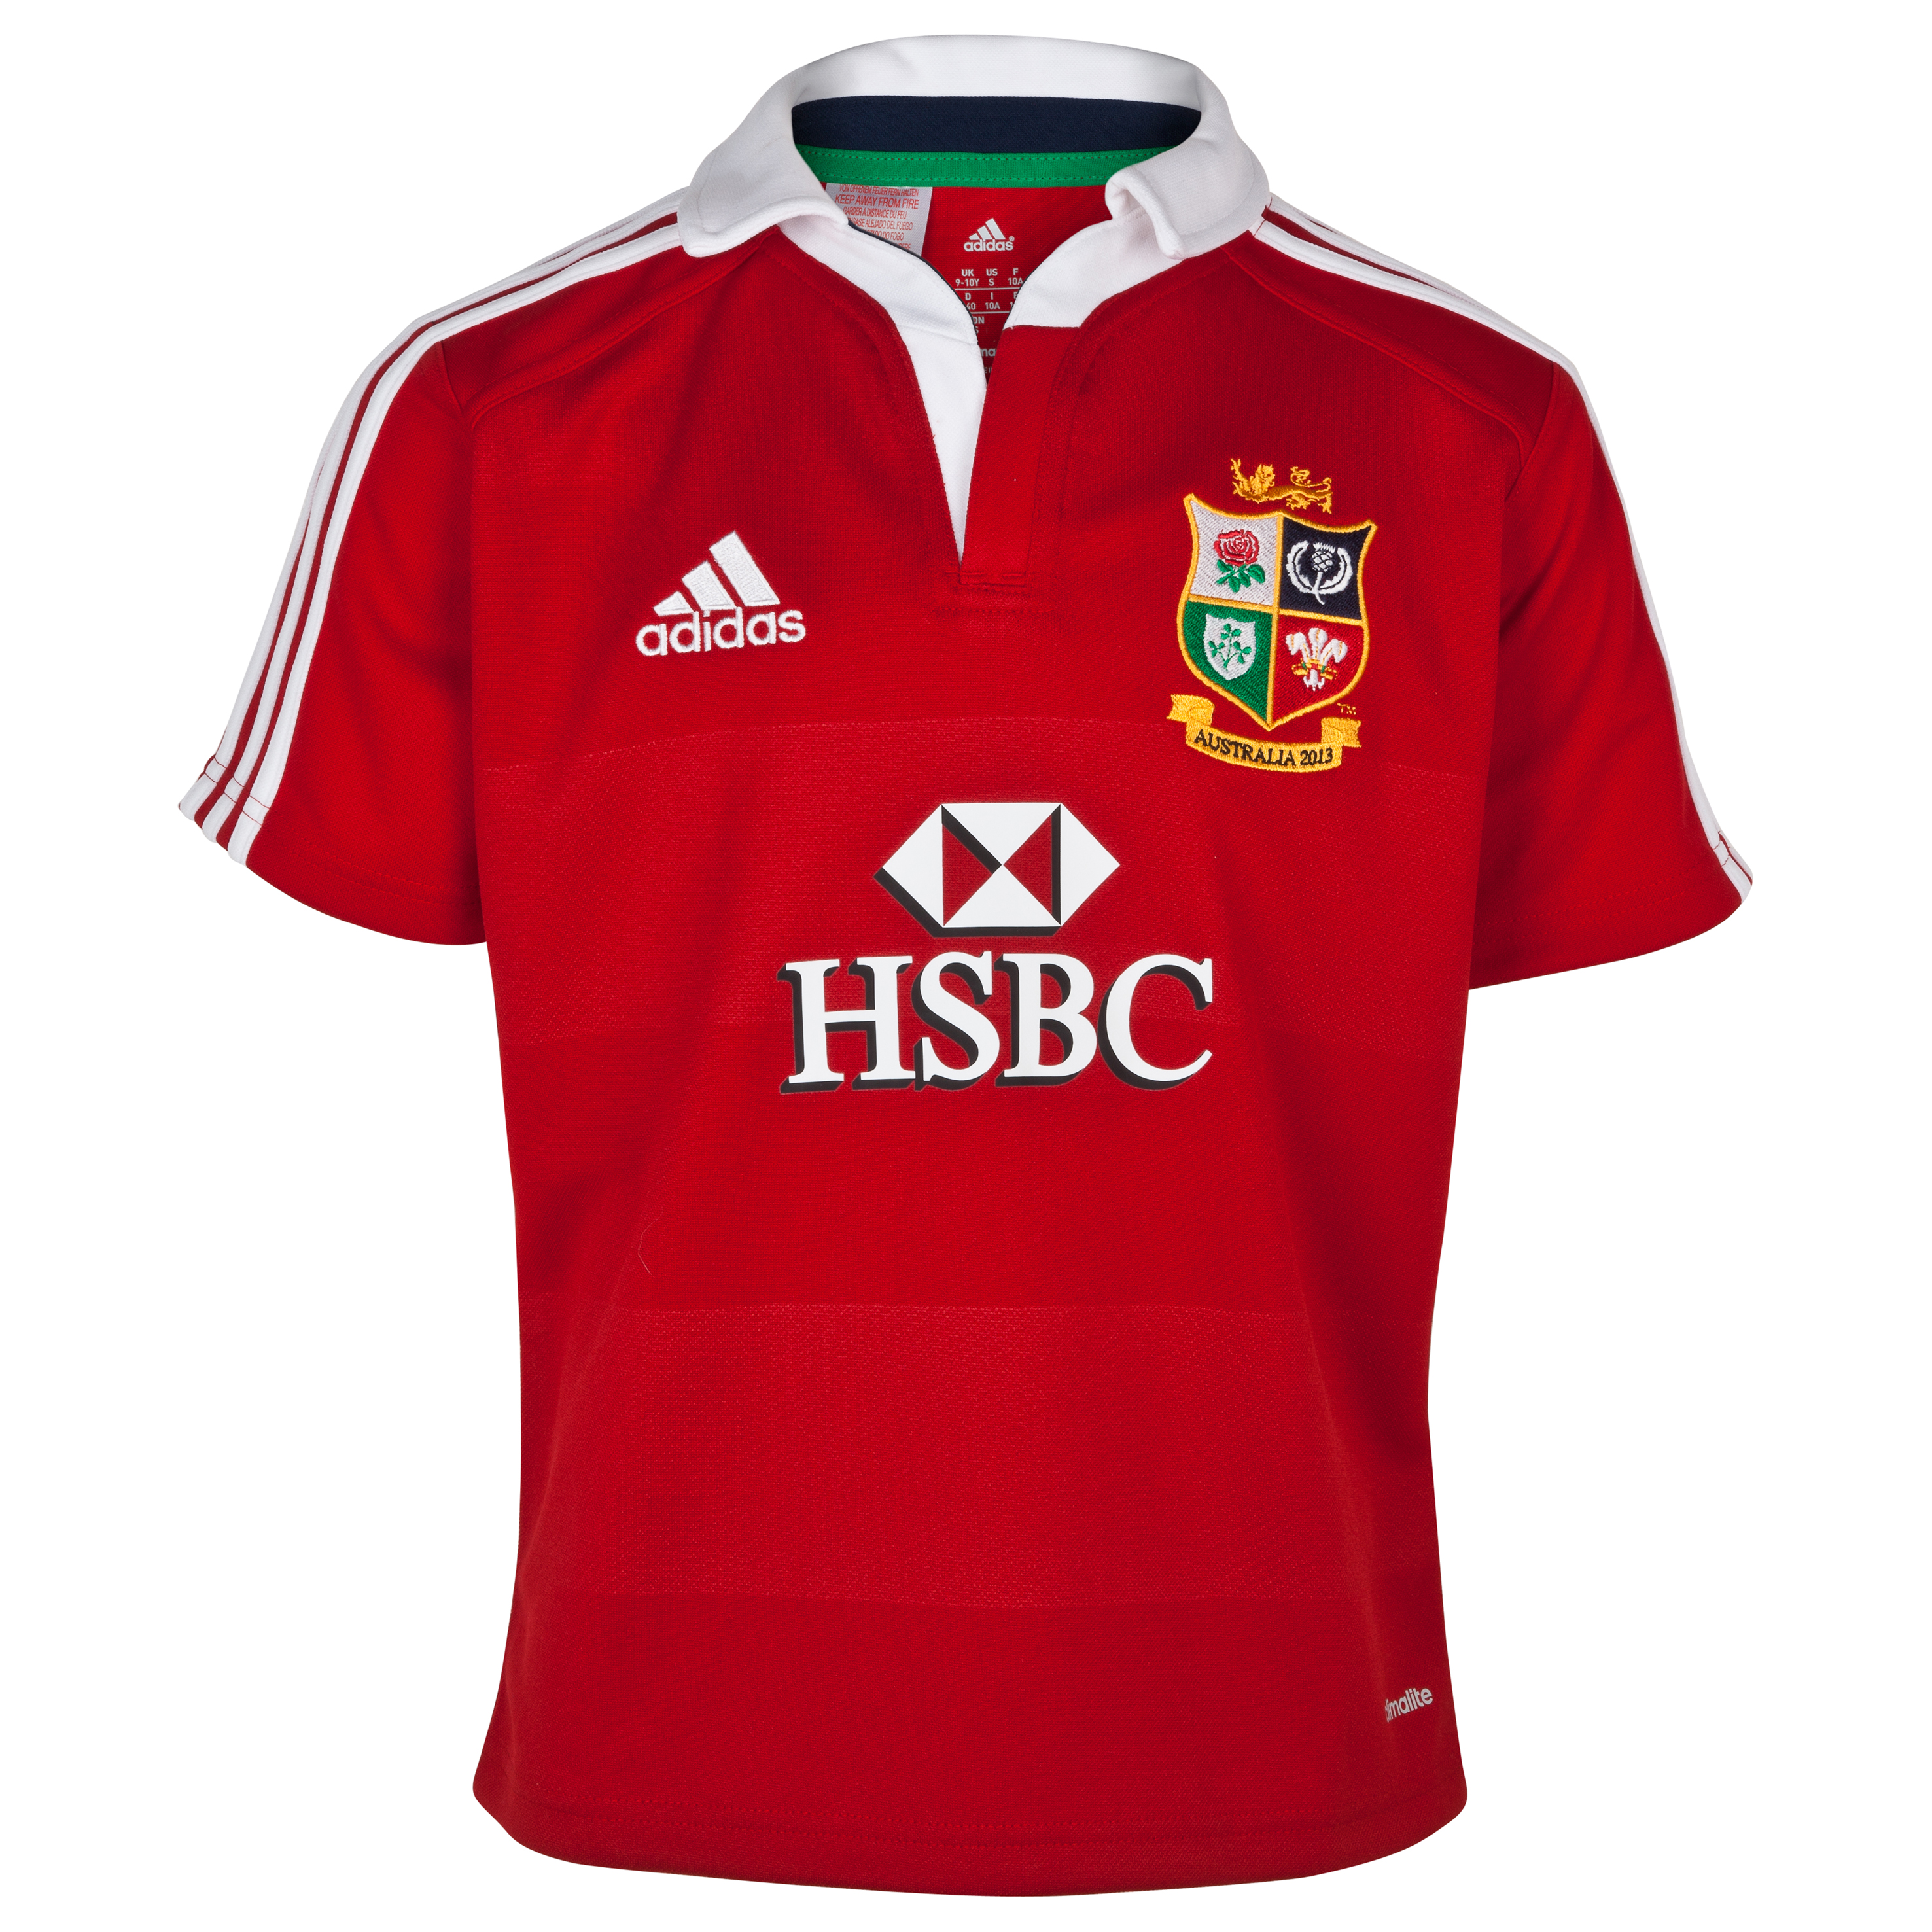 adidas British and Irish Lions Home Shirt 2013  - Kids